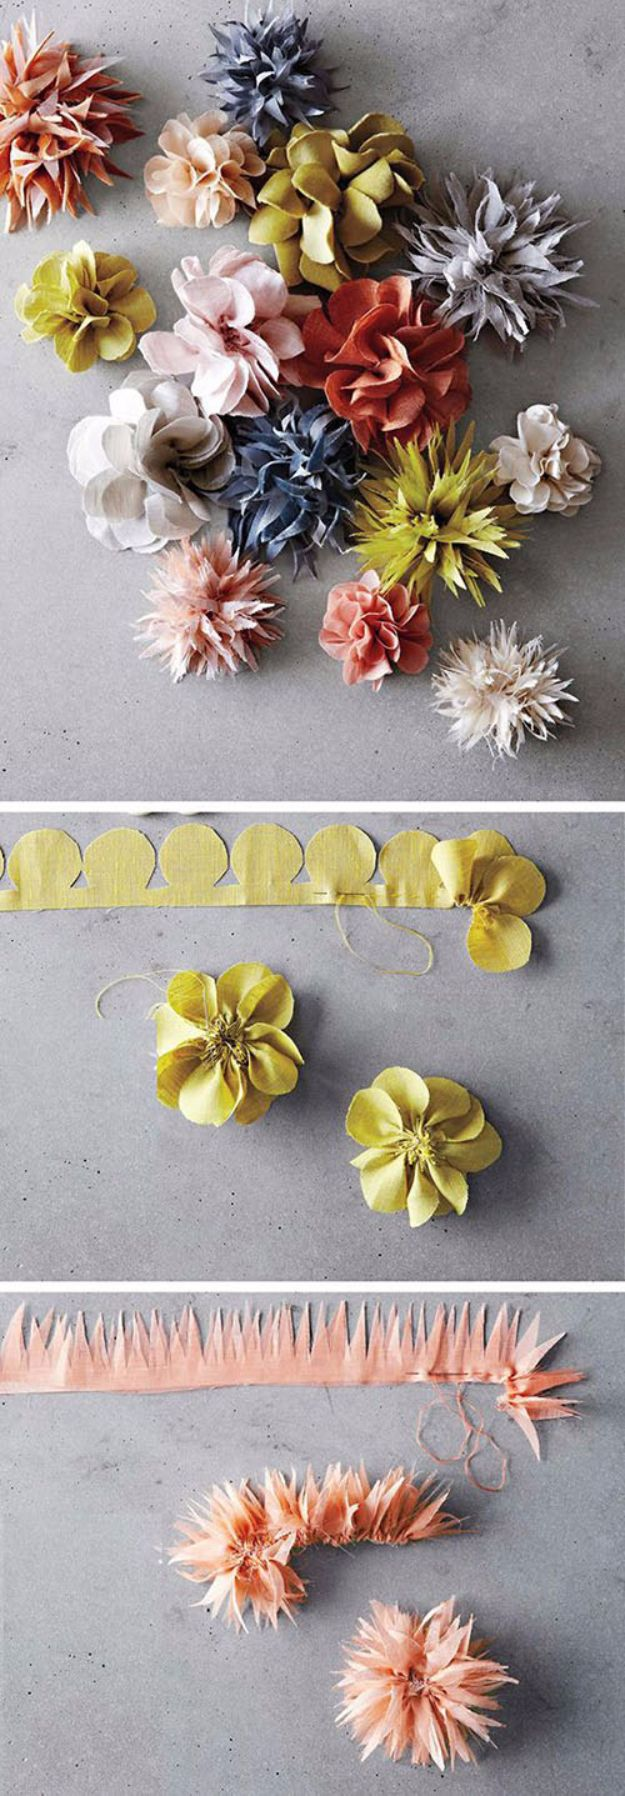 DIY Paper Flowers For Your Room - DIY Beautiful Paper Flower - How To Make A Paper Flower - Large Wedding Backdrop for Wall Decor - Easy Tissue Paper Flower Tutorial for Kids - Giant Projects for Photo Backdrops - Daisy, Roses, Bouquets, Centerpieces - Cricut Template and Step by Step Tutorial http://diyjoy.com/diy-paper-flowers